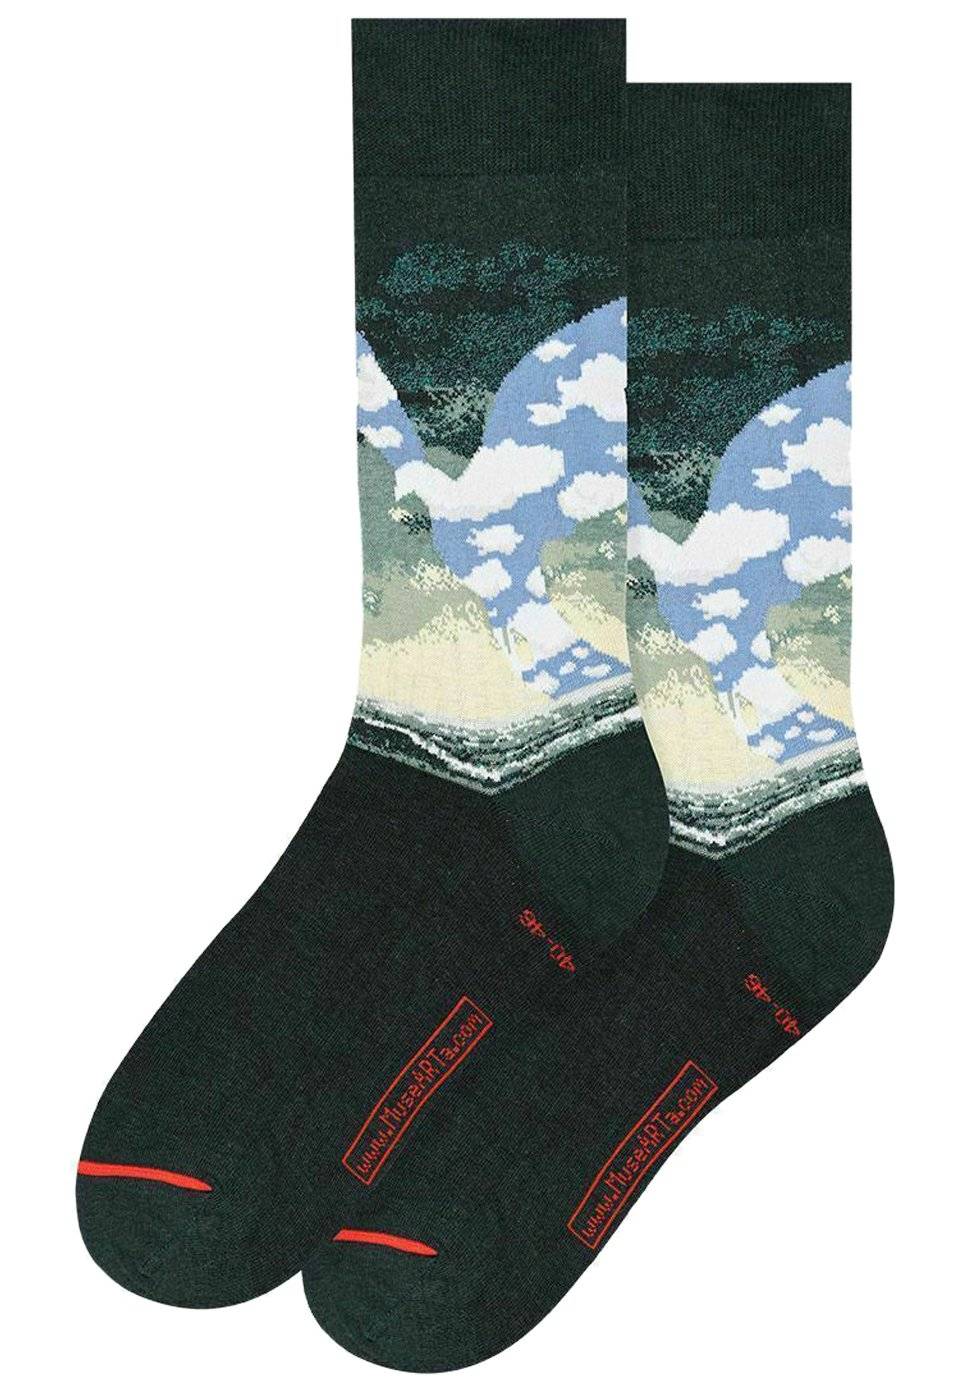 Femme RENÉ MAGRITTE : THE GREAT FAMILY - Chaussettes